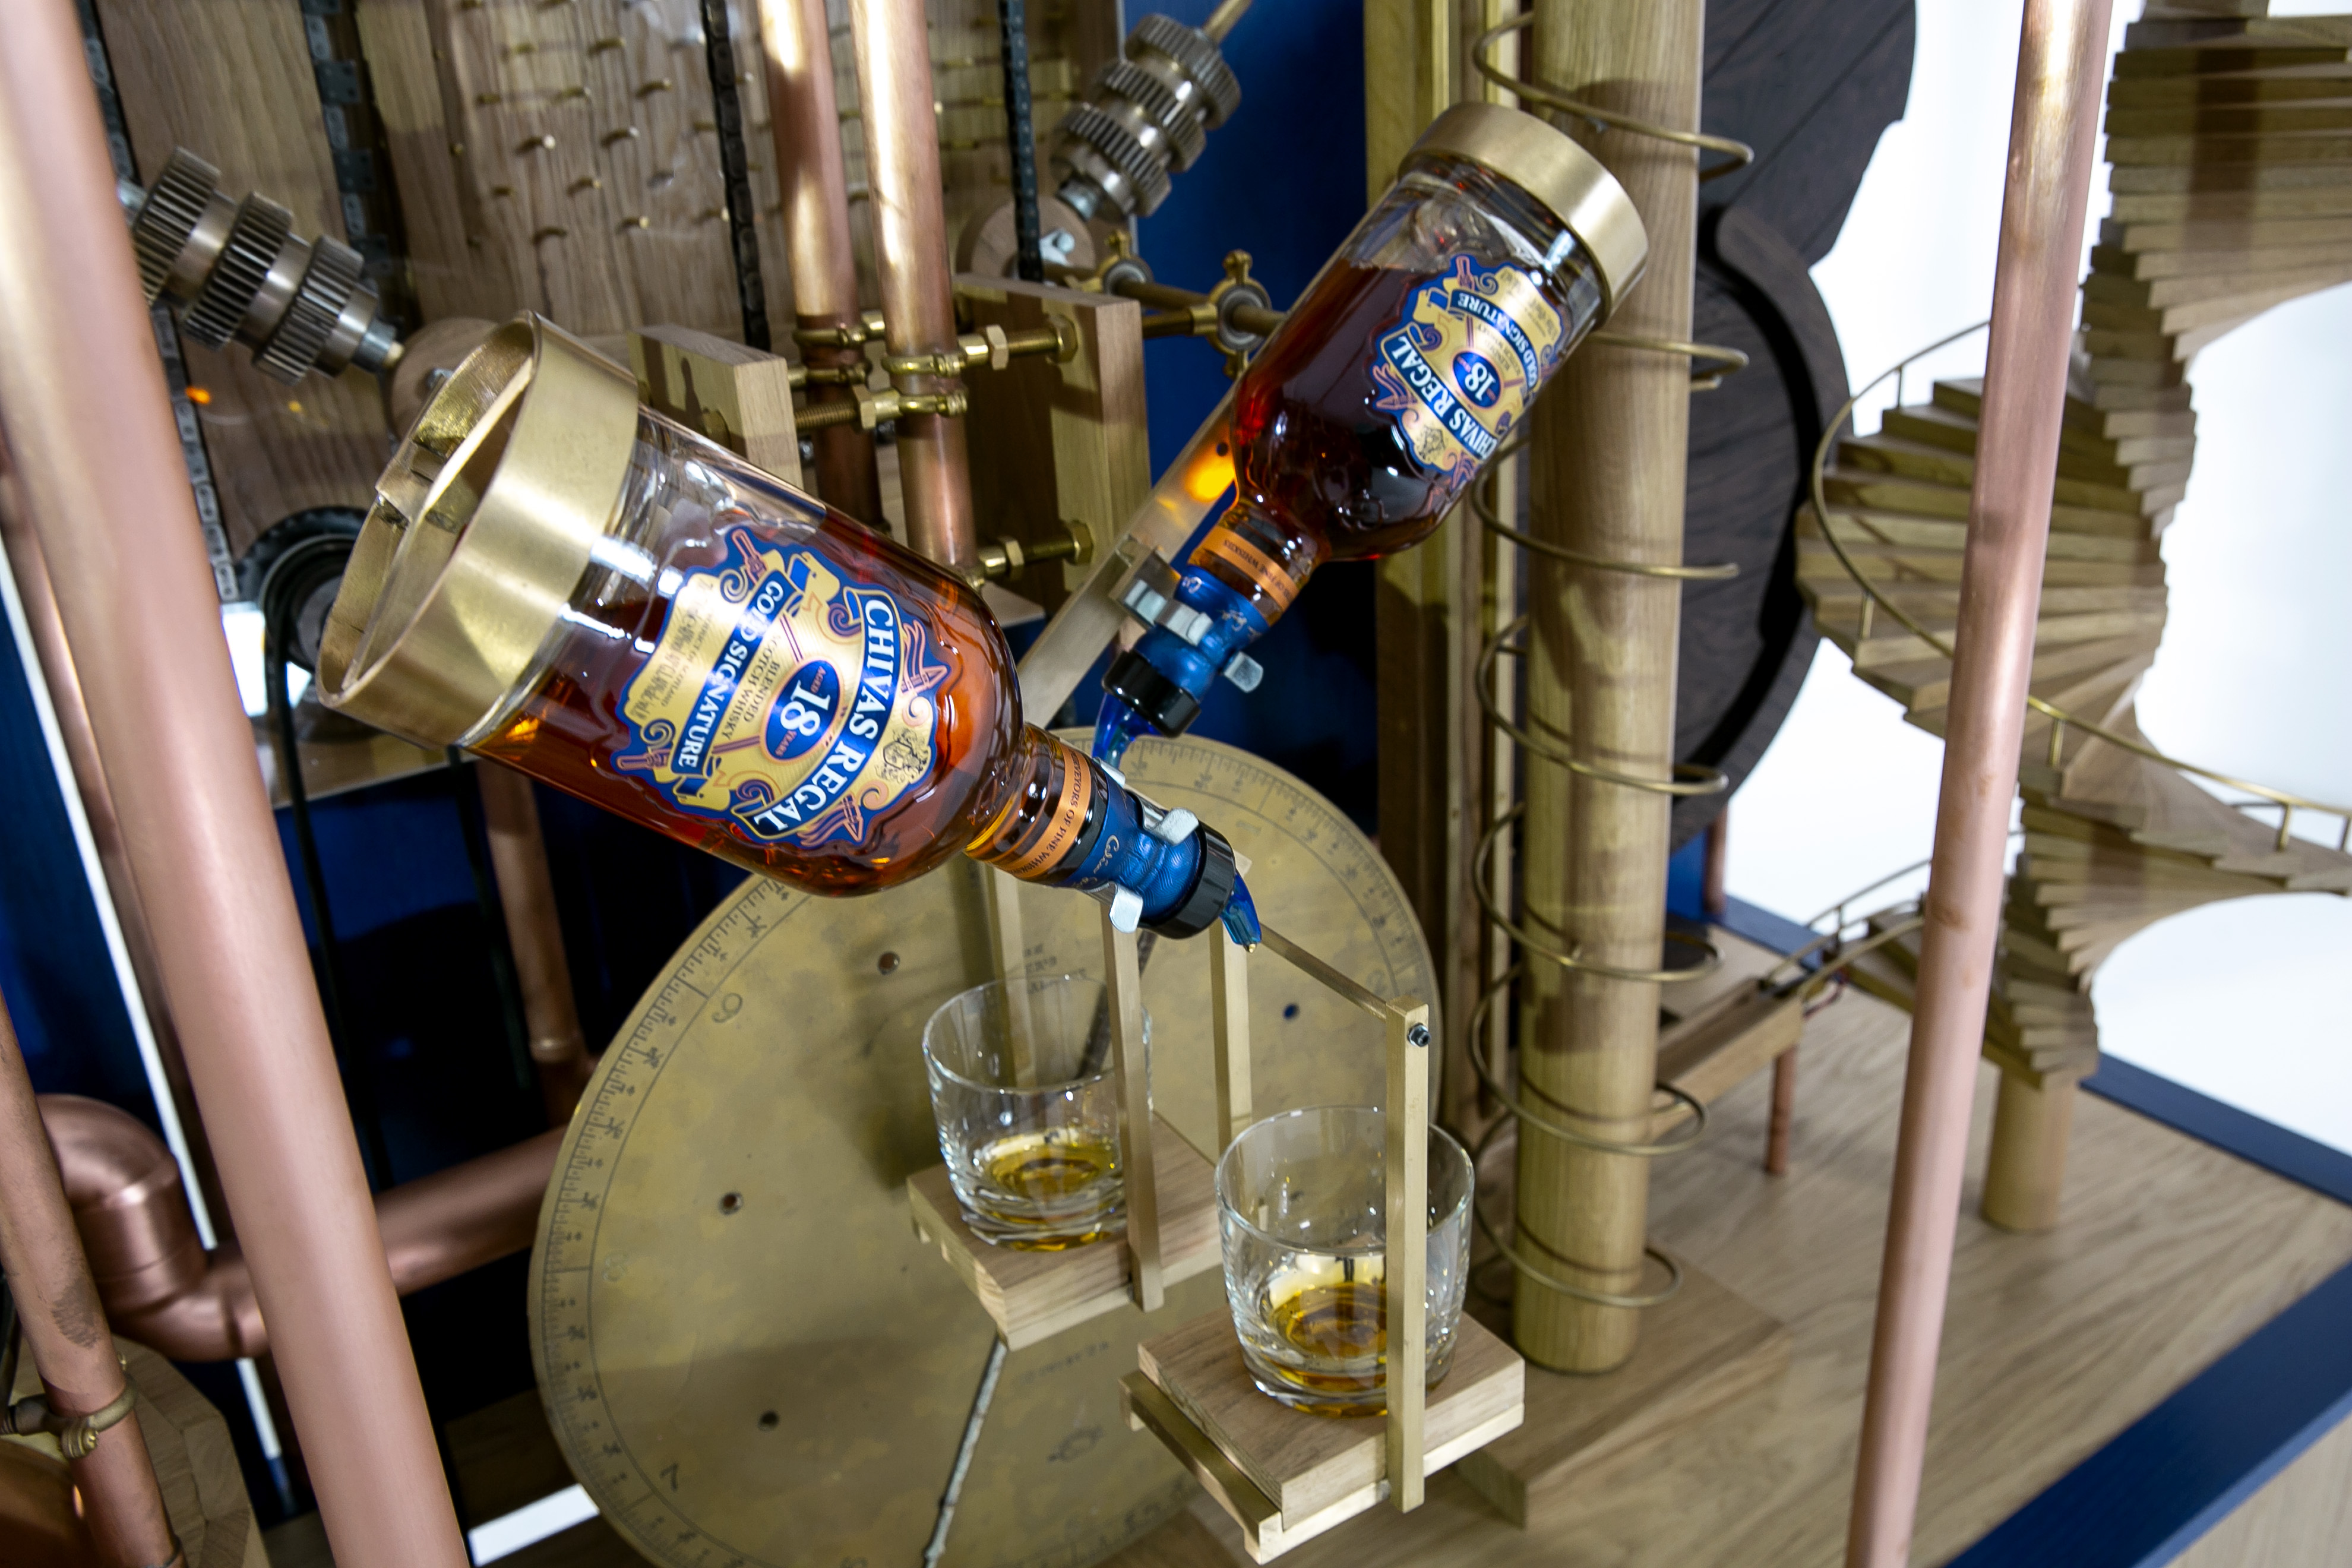 The Chivas whisky pouring machine pours out two perfect measures